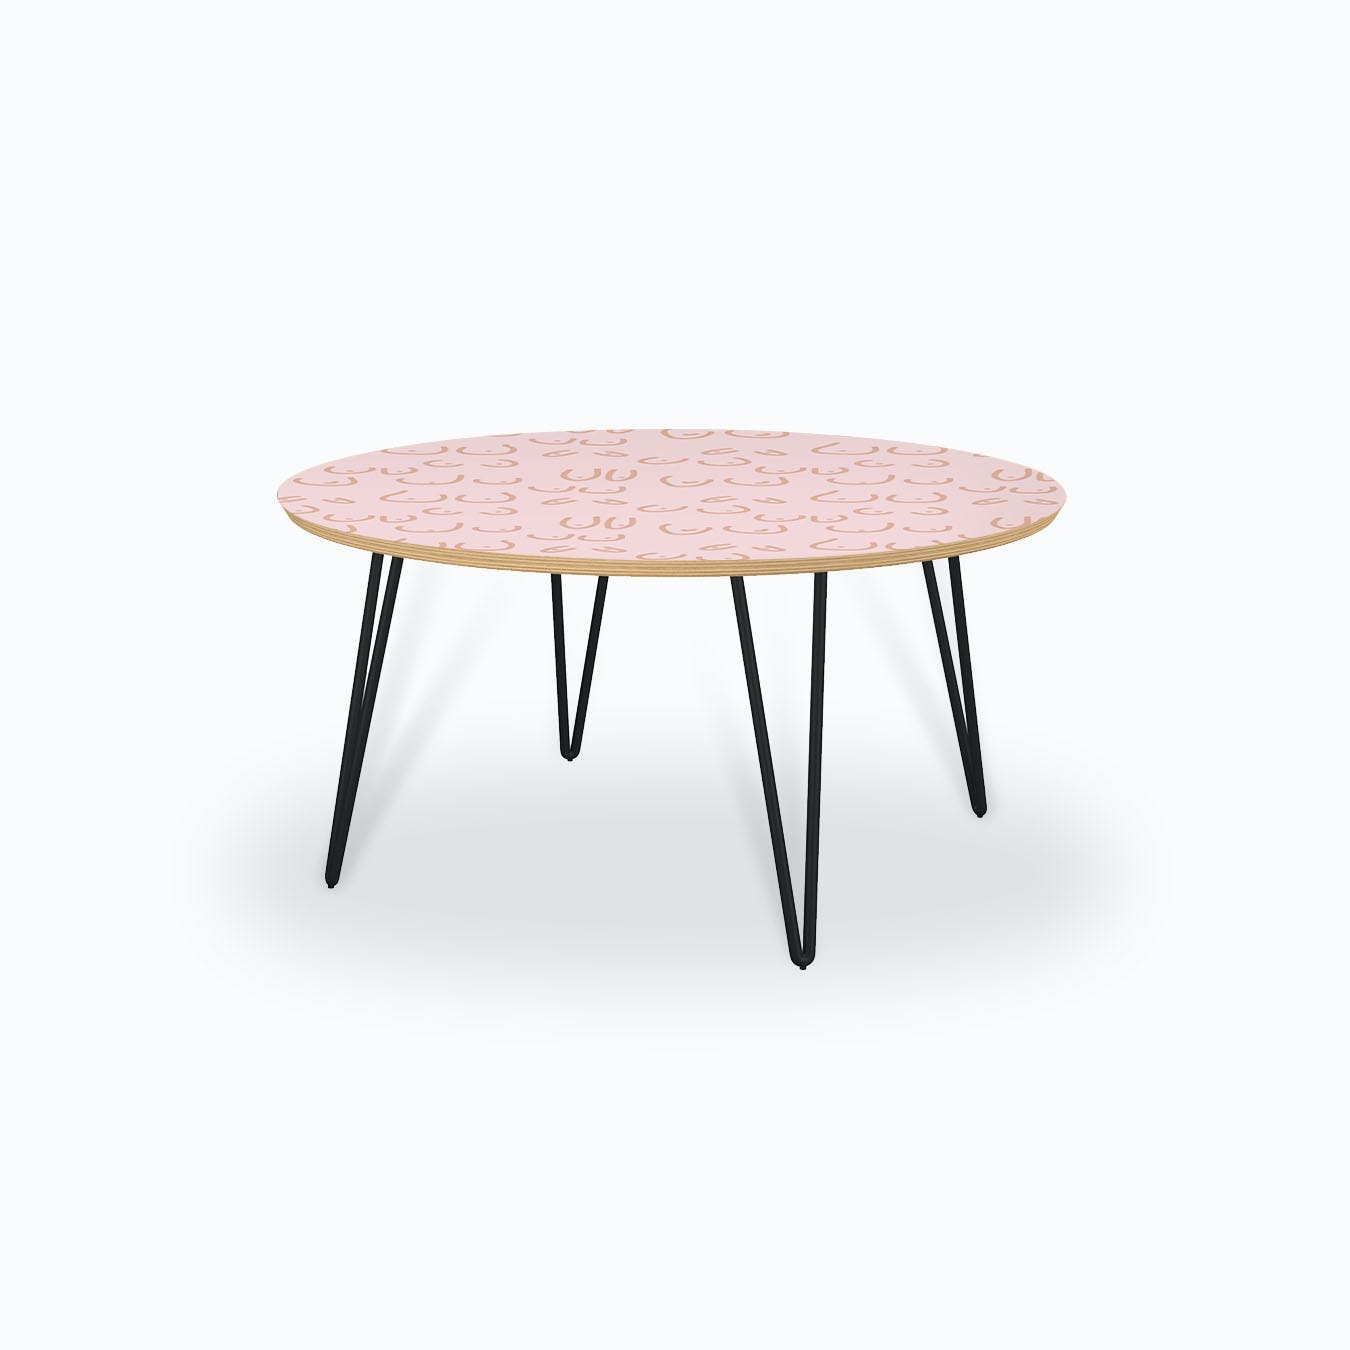 - Boobies Pink Coffee Table By Mambo Furniture - Fy